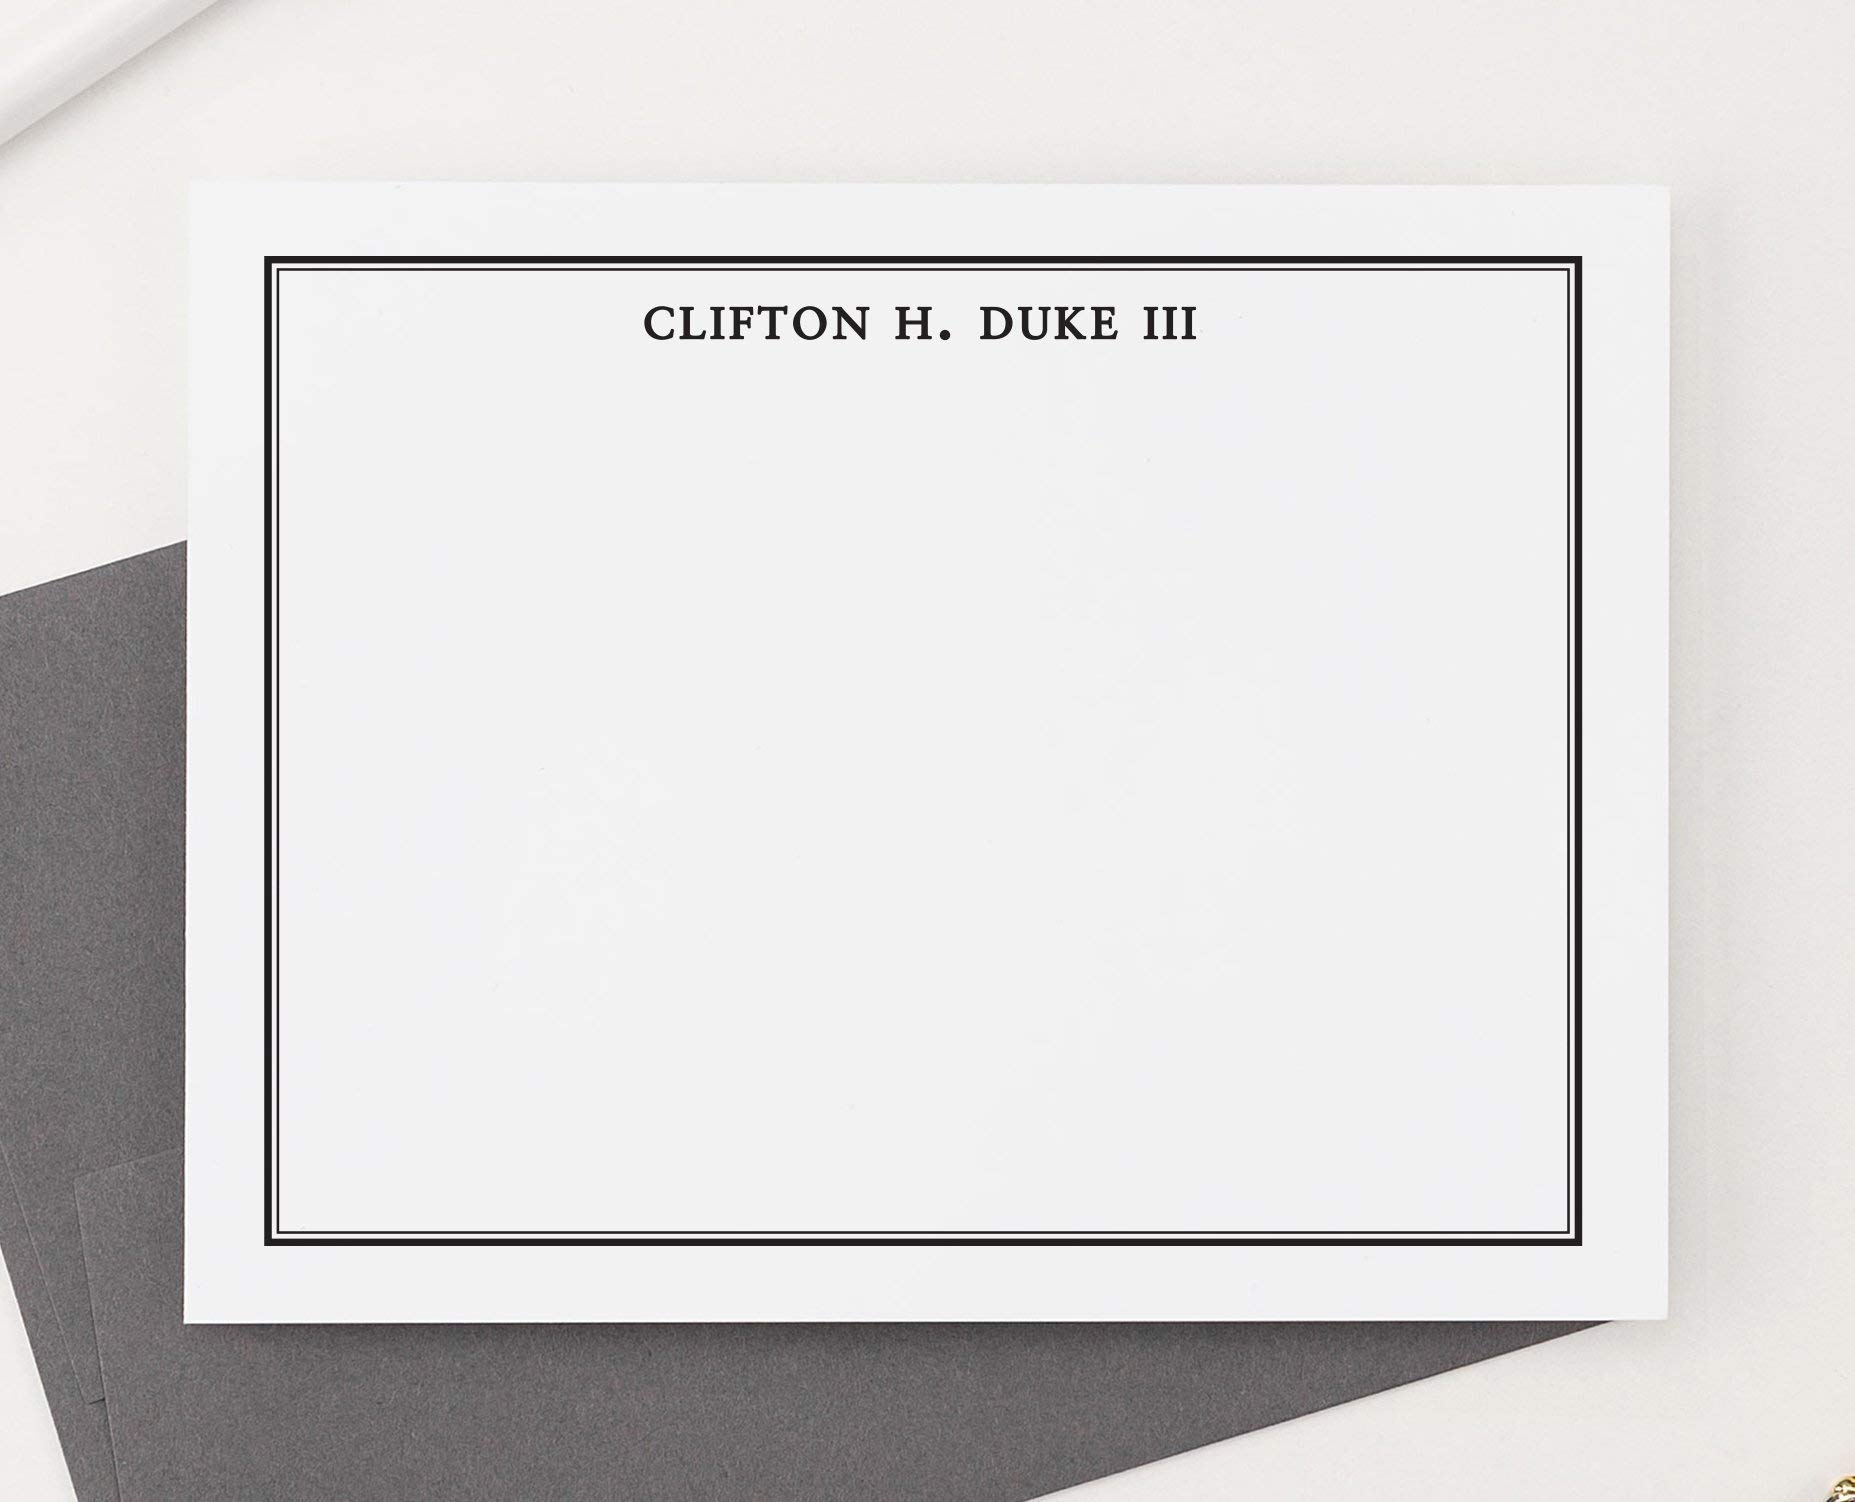 Mens Personalized Stationery Set for Boys, Boys Personalized Thank you Notes, Mens Personalized Note Cards, Mens Stationary Set, Your Choice of Colors, Set of 10 flat note cards and envelopes